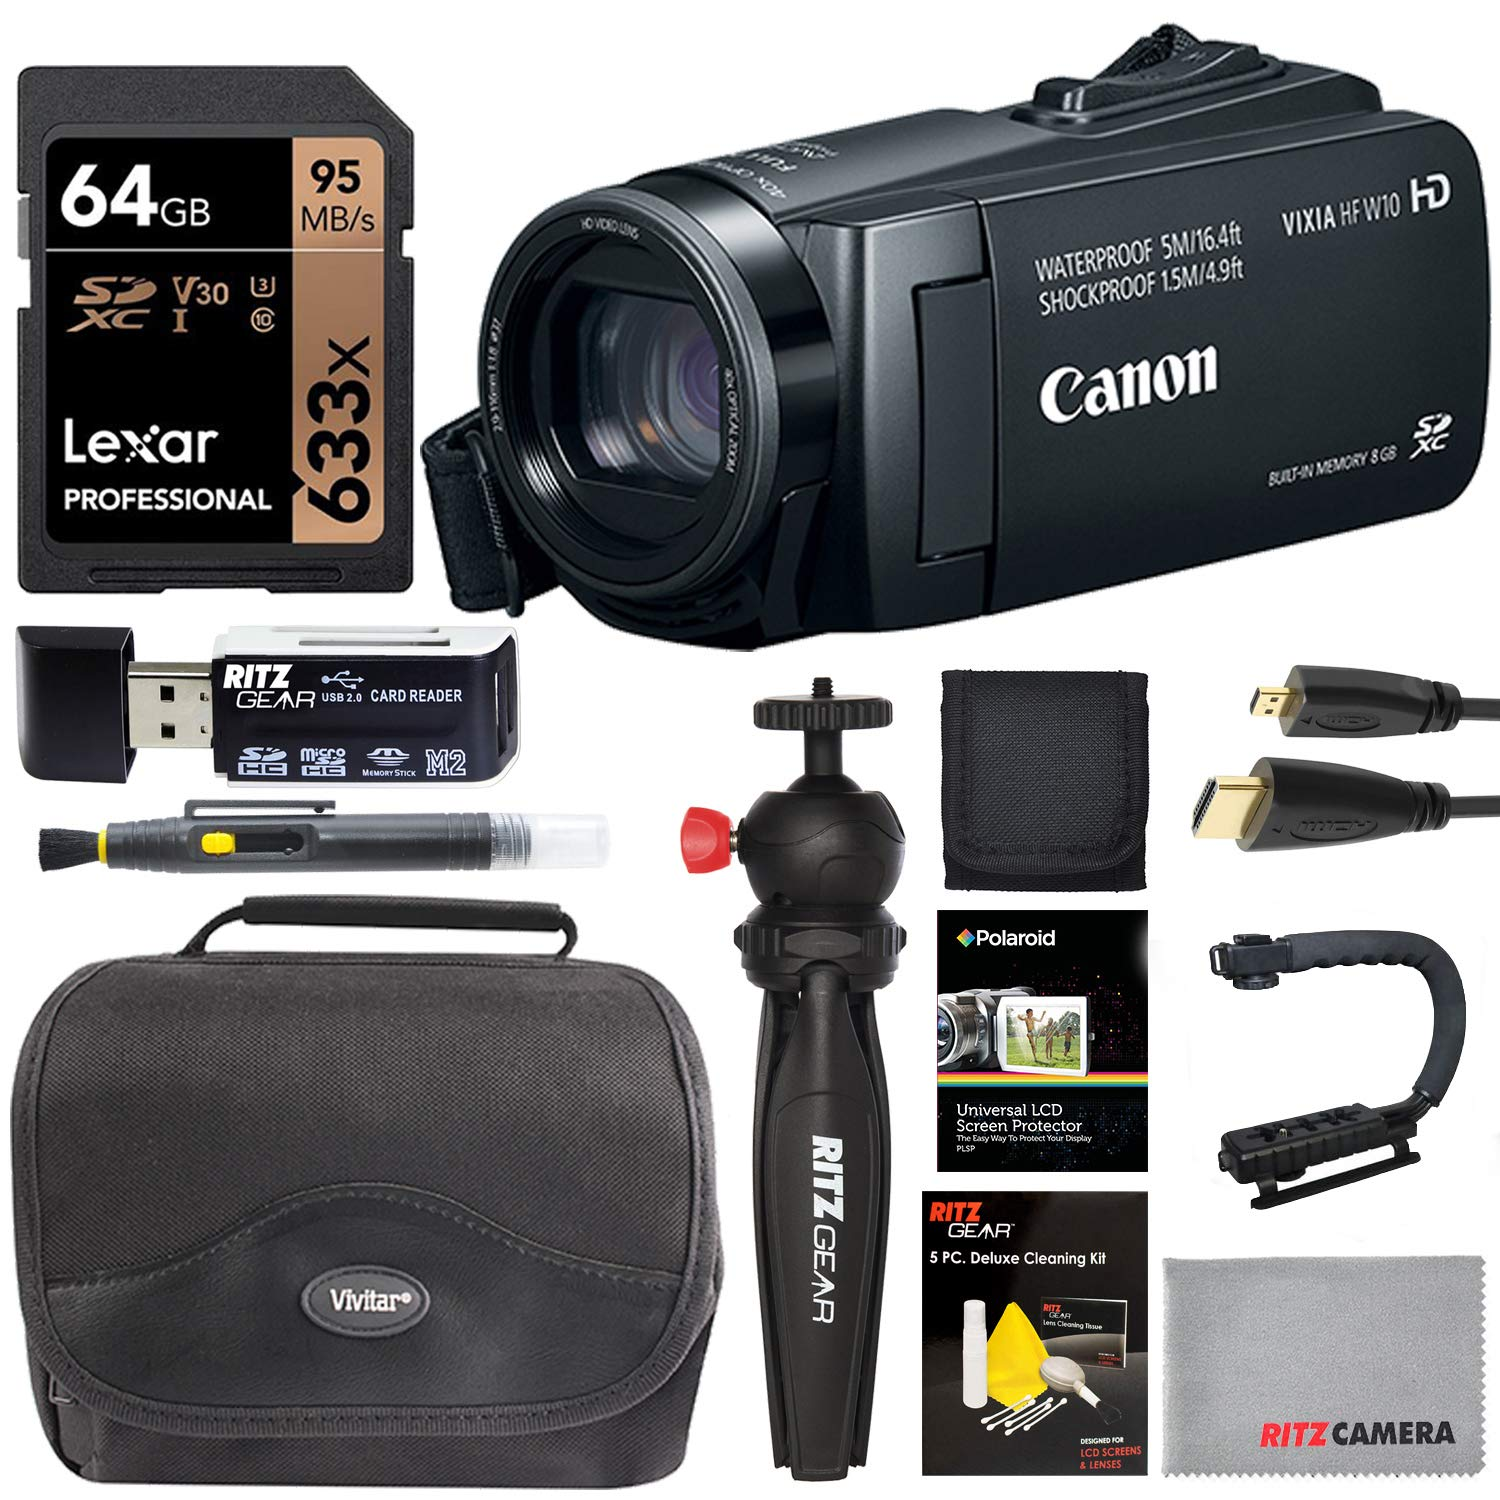 Canon VIXIA HF W10 Camcorder Full HD 1080p Waterproof Shockproof Dust and Freezeproof Video Camera Bundle with Deco Gear Photography Case Cleaning Kit Tripod UV Filter /& Microphone Deluxe Bundle